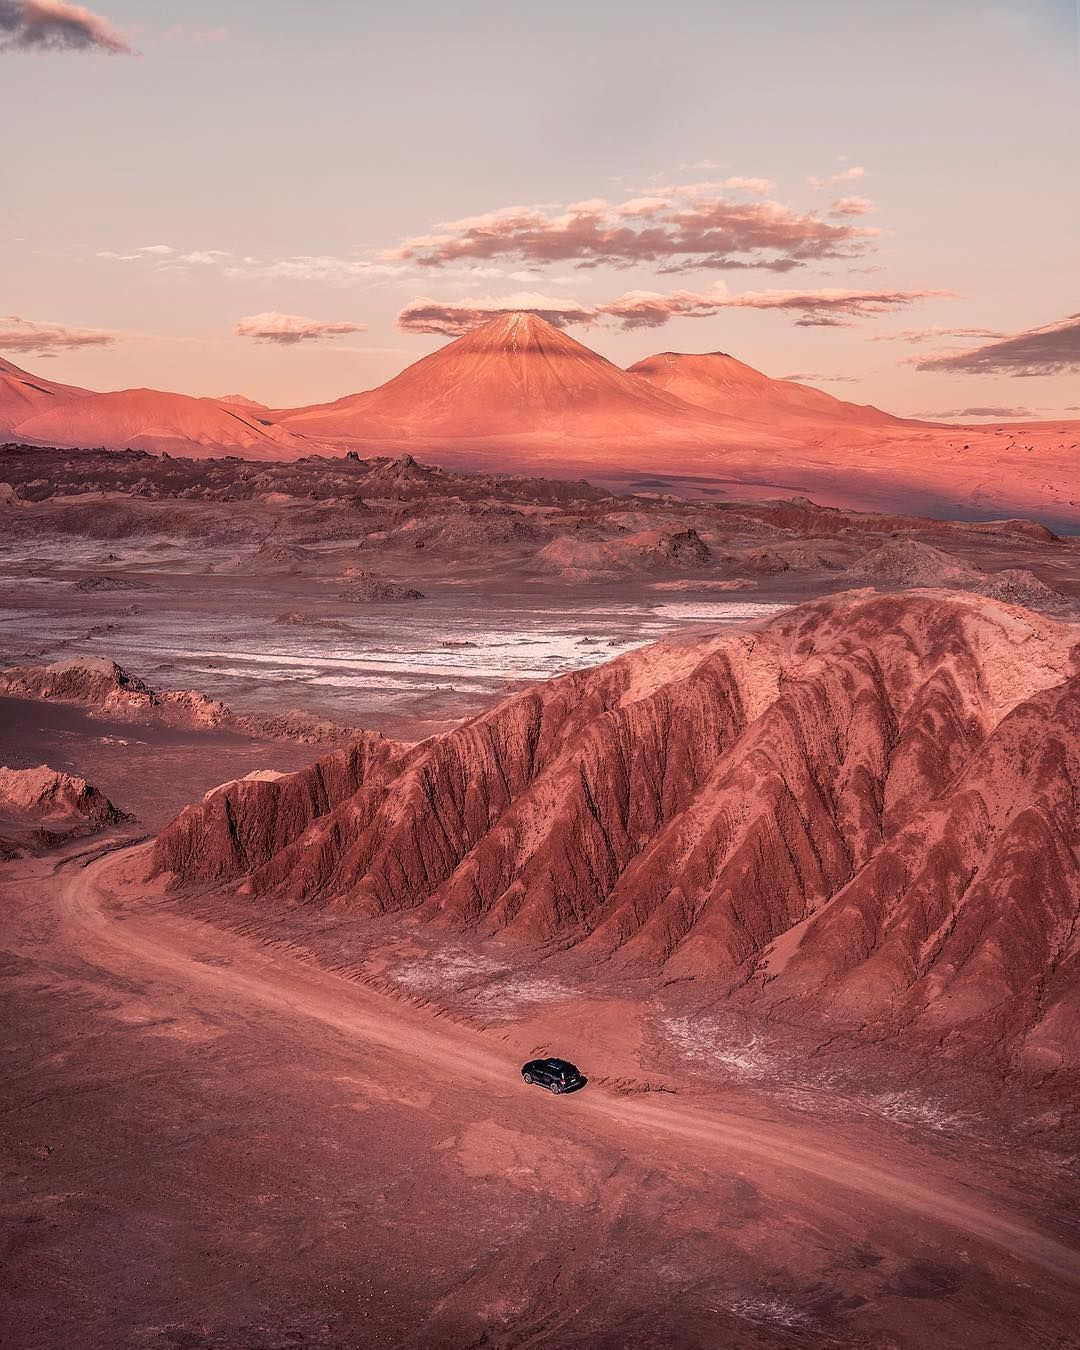 San Pedro De Atacama Chile Repost Josemostajo That One Time We Drove Through Mars Also Chile Travel Chile Travel Destinations South America Travel